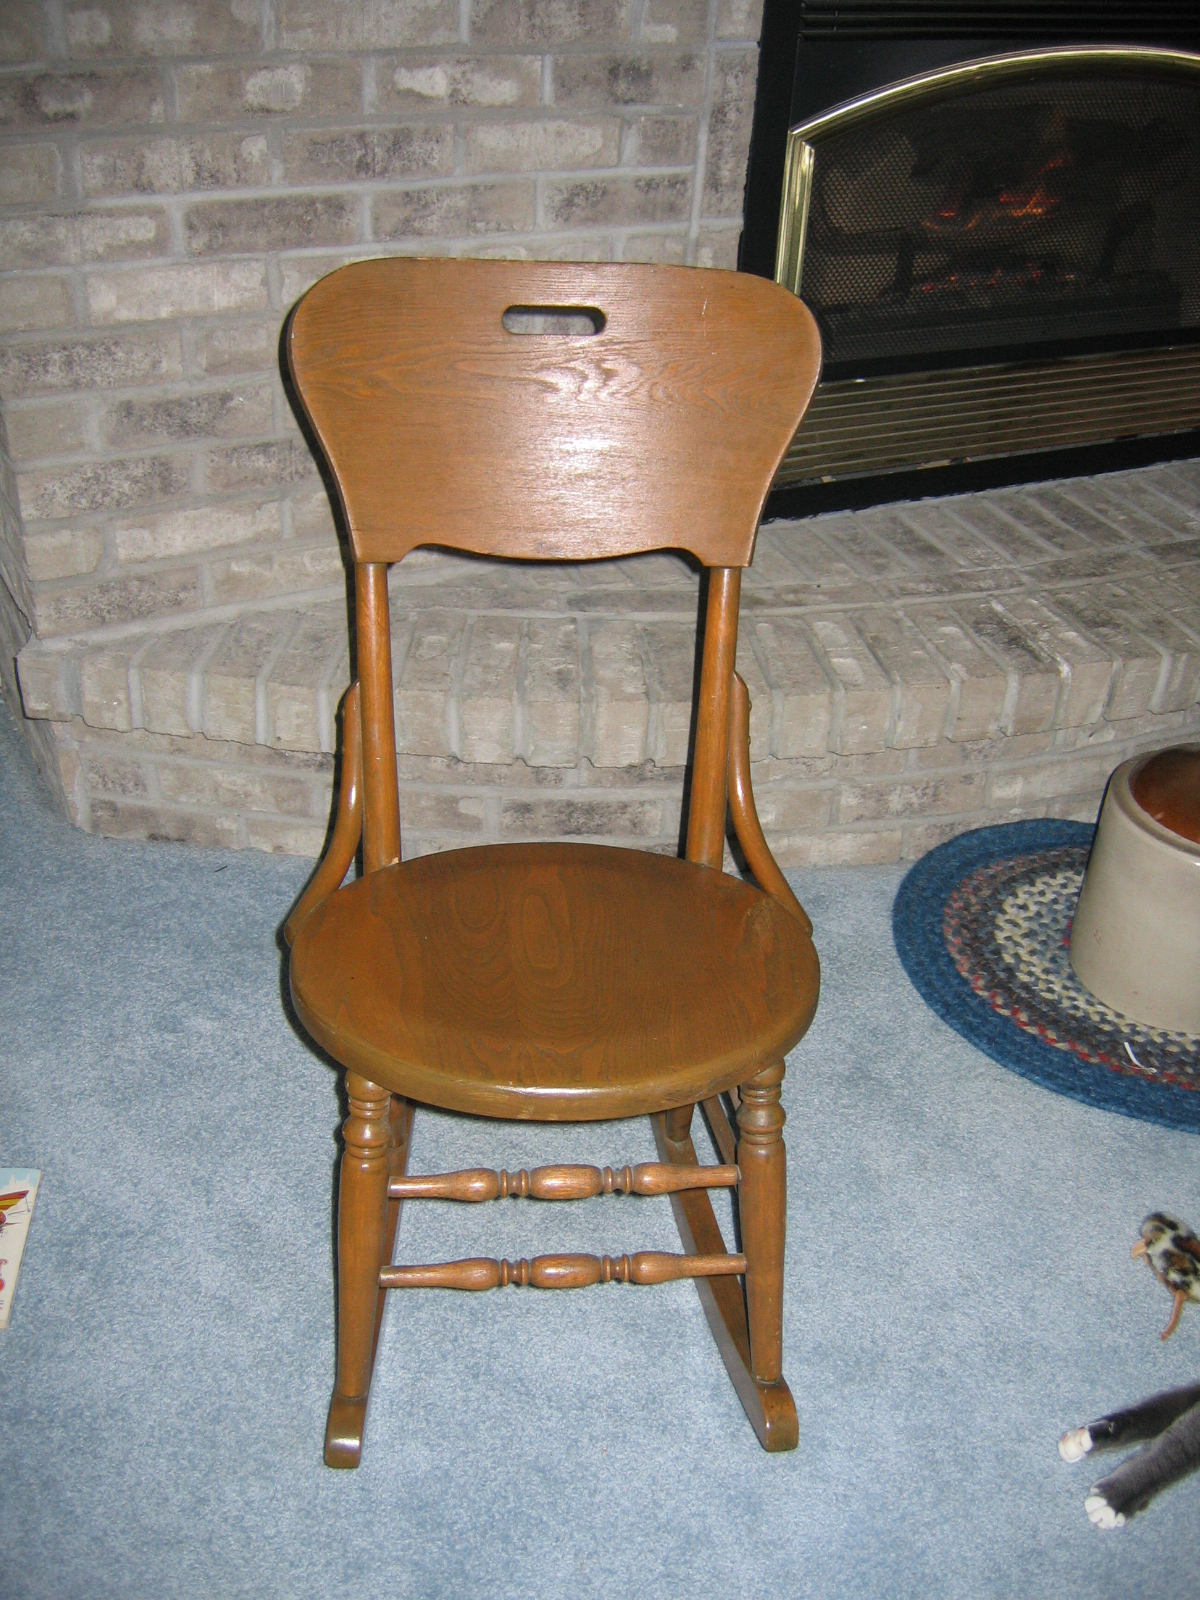 Vintage Ladies Knitting Wood Rocking Chair Item #811 For Sale ...